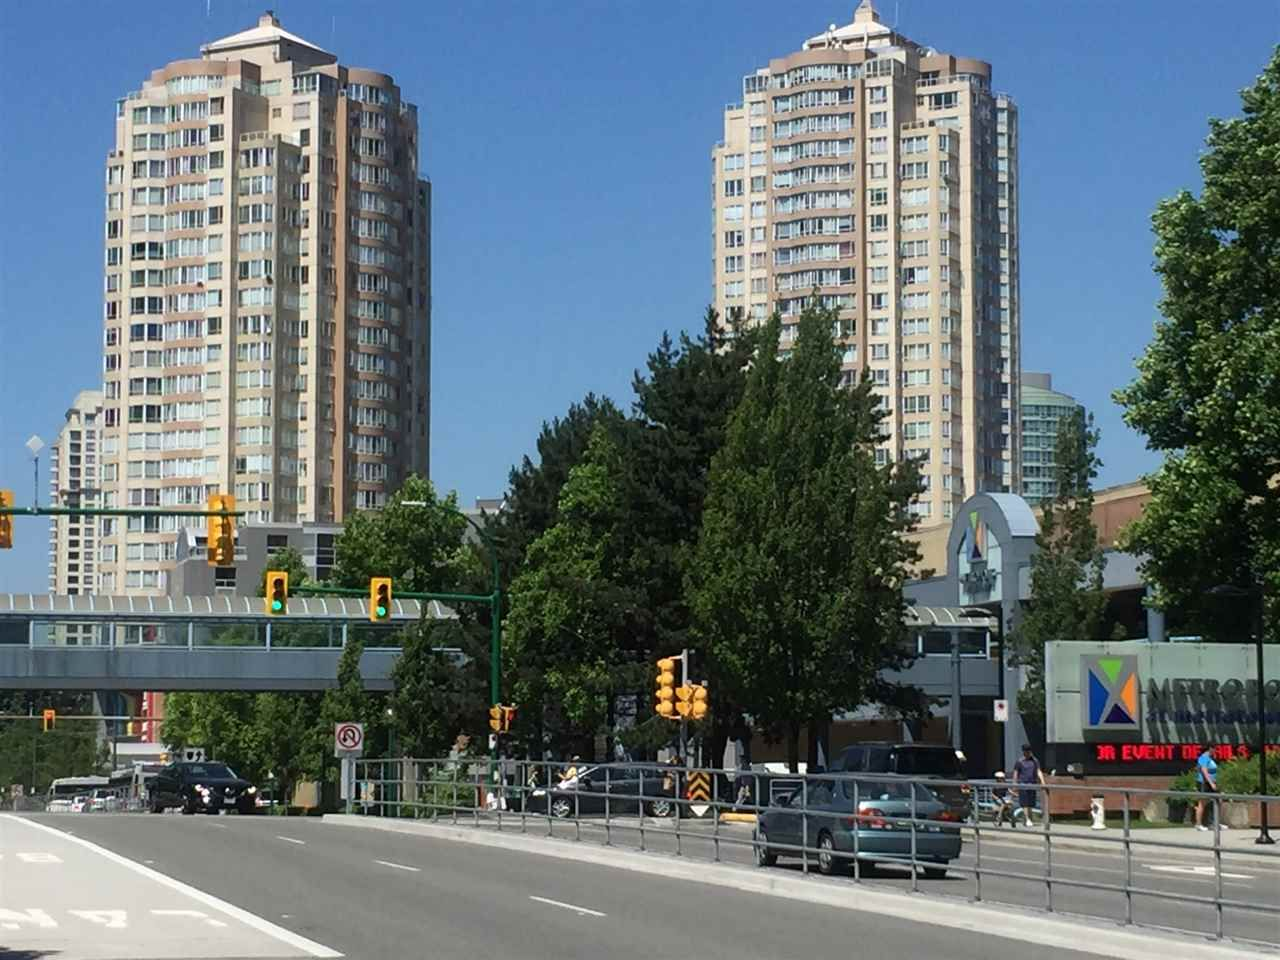 Main Photo: 2201 6240 MCKAY AVENUE in Burnaby: Metrotown Condo for sale (Burnaby South)  : MLS®# R2513511